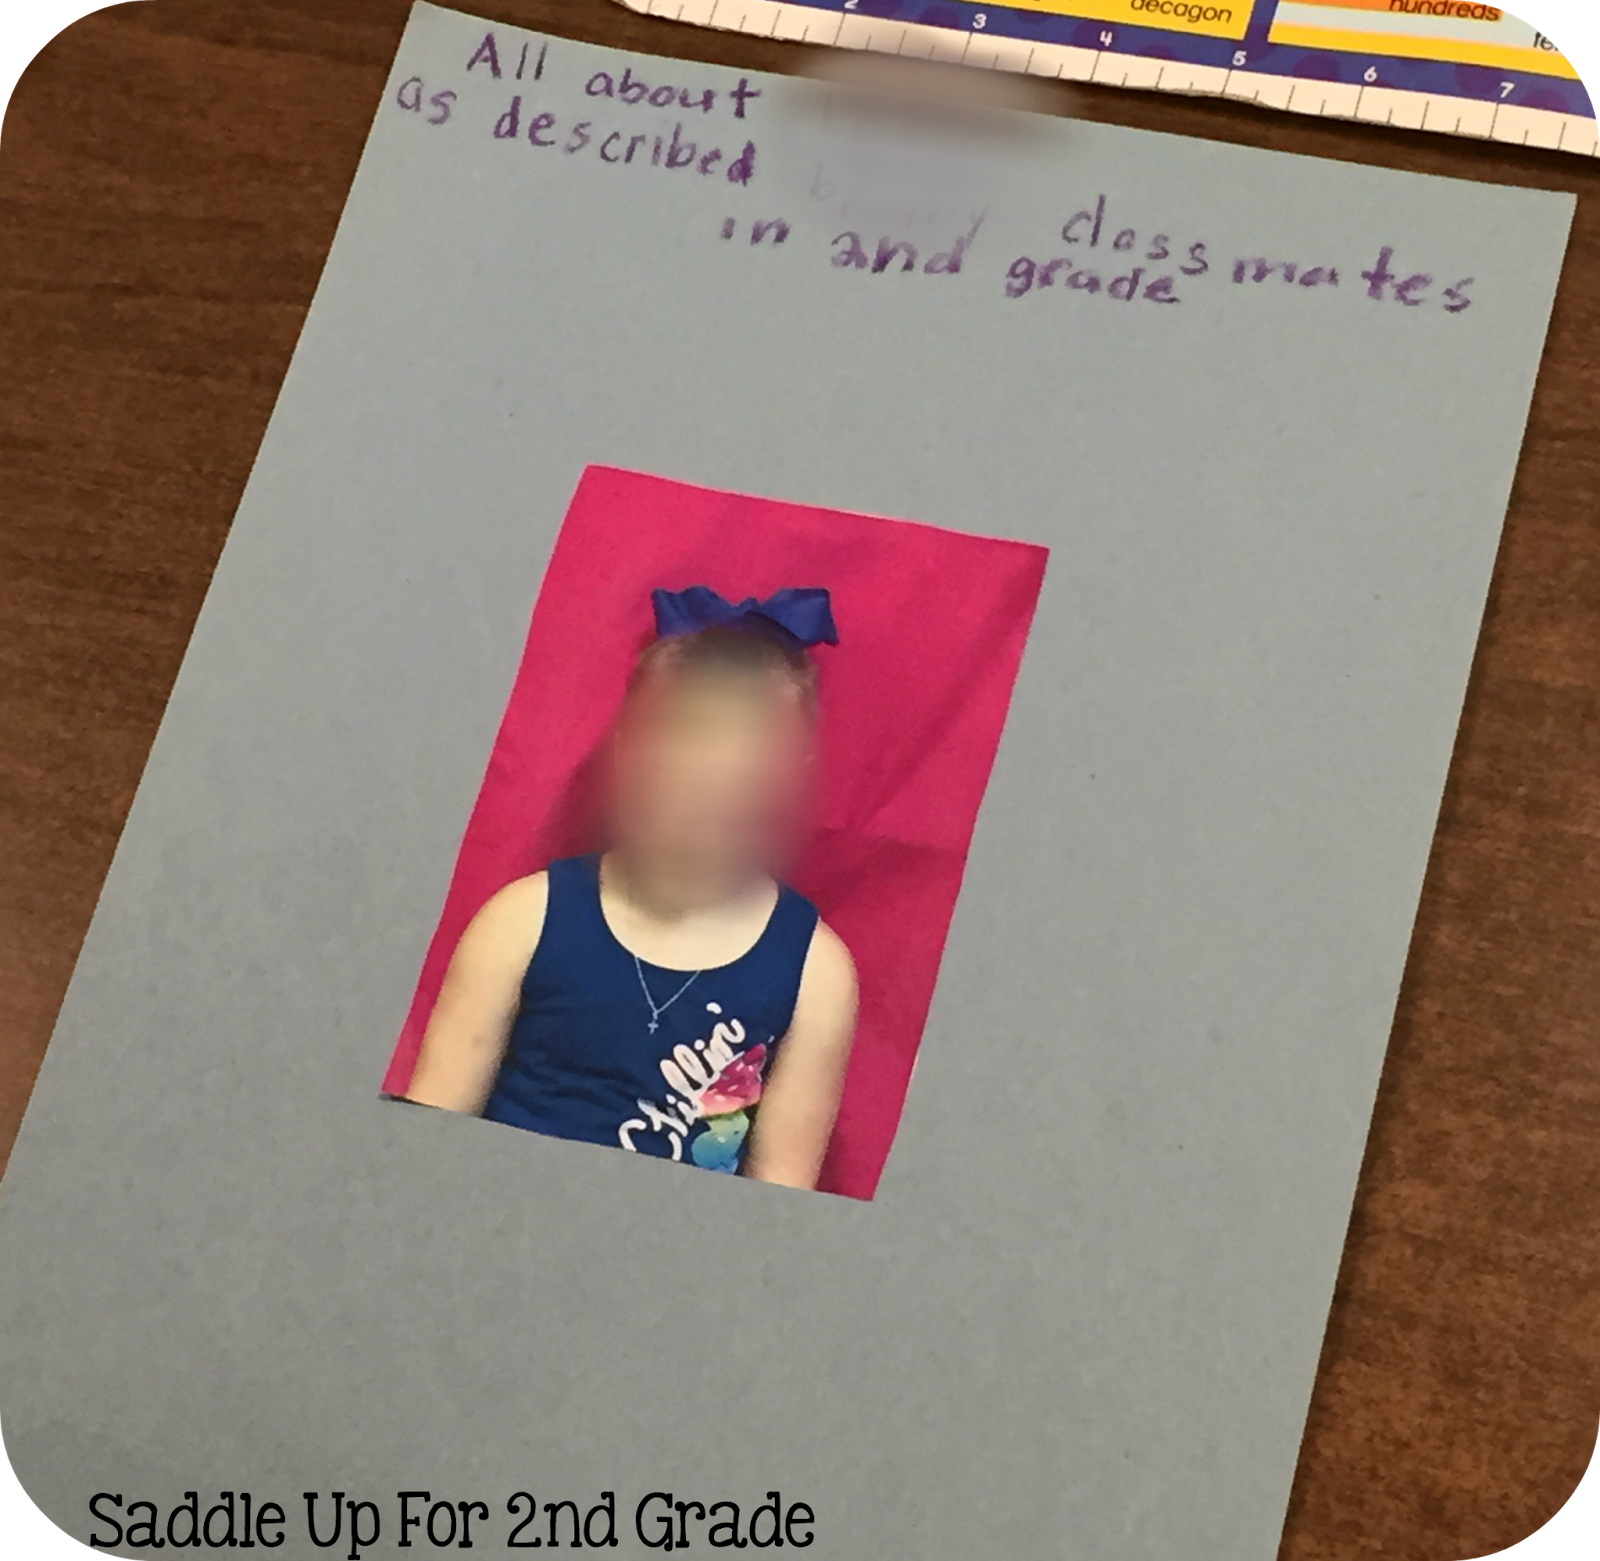 The end of the year is a great time to reflect on what you've learned throughout the year. This peer review adjective activity is a great way for students to describe their friends. They make excellent end of the year gifts too!